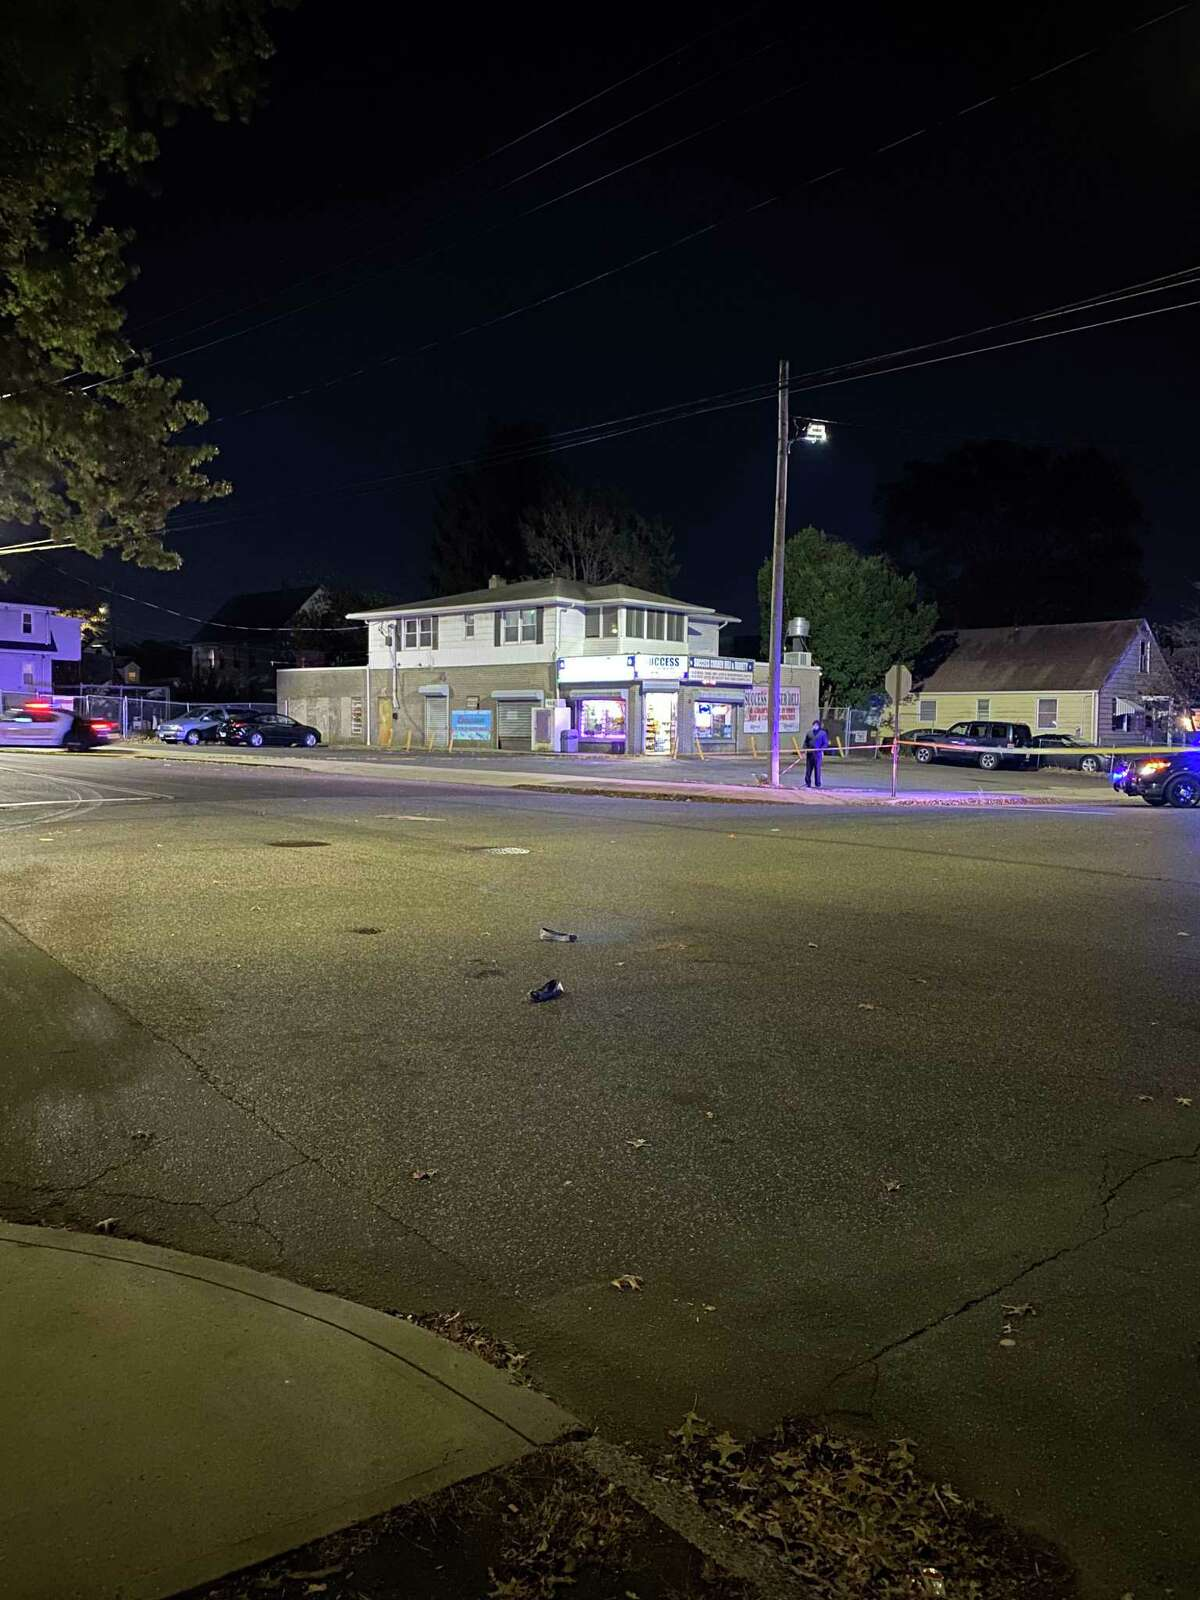 The intersection of Granfield and Success avenues in Bridgeport, Conn., after the driver of a pickup truck allegedly hit a pedestrian as she was crossing the road on Wednesday, Nov. 4, 2020.